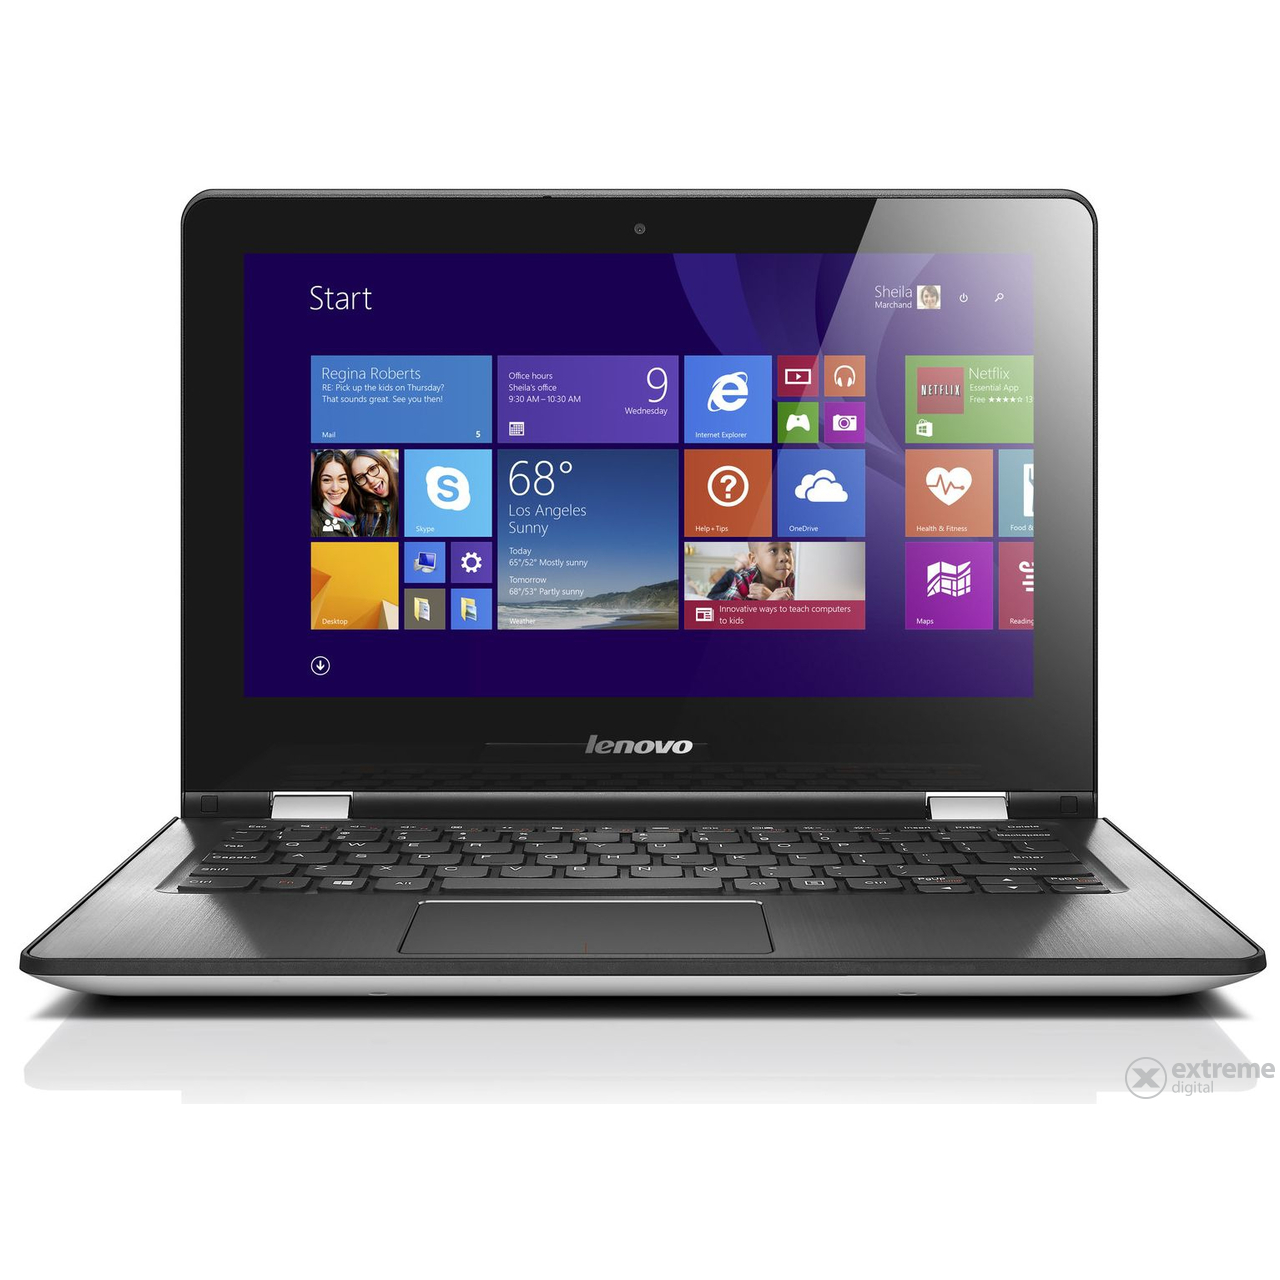 lenovo-ideapad-yoga-300-80m1001chv-notebook-windows-10-feher_8586c8a7.jpg